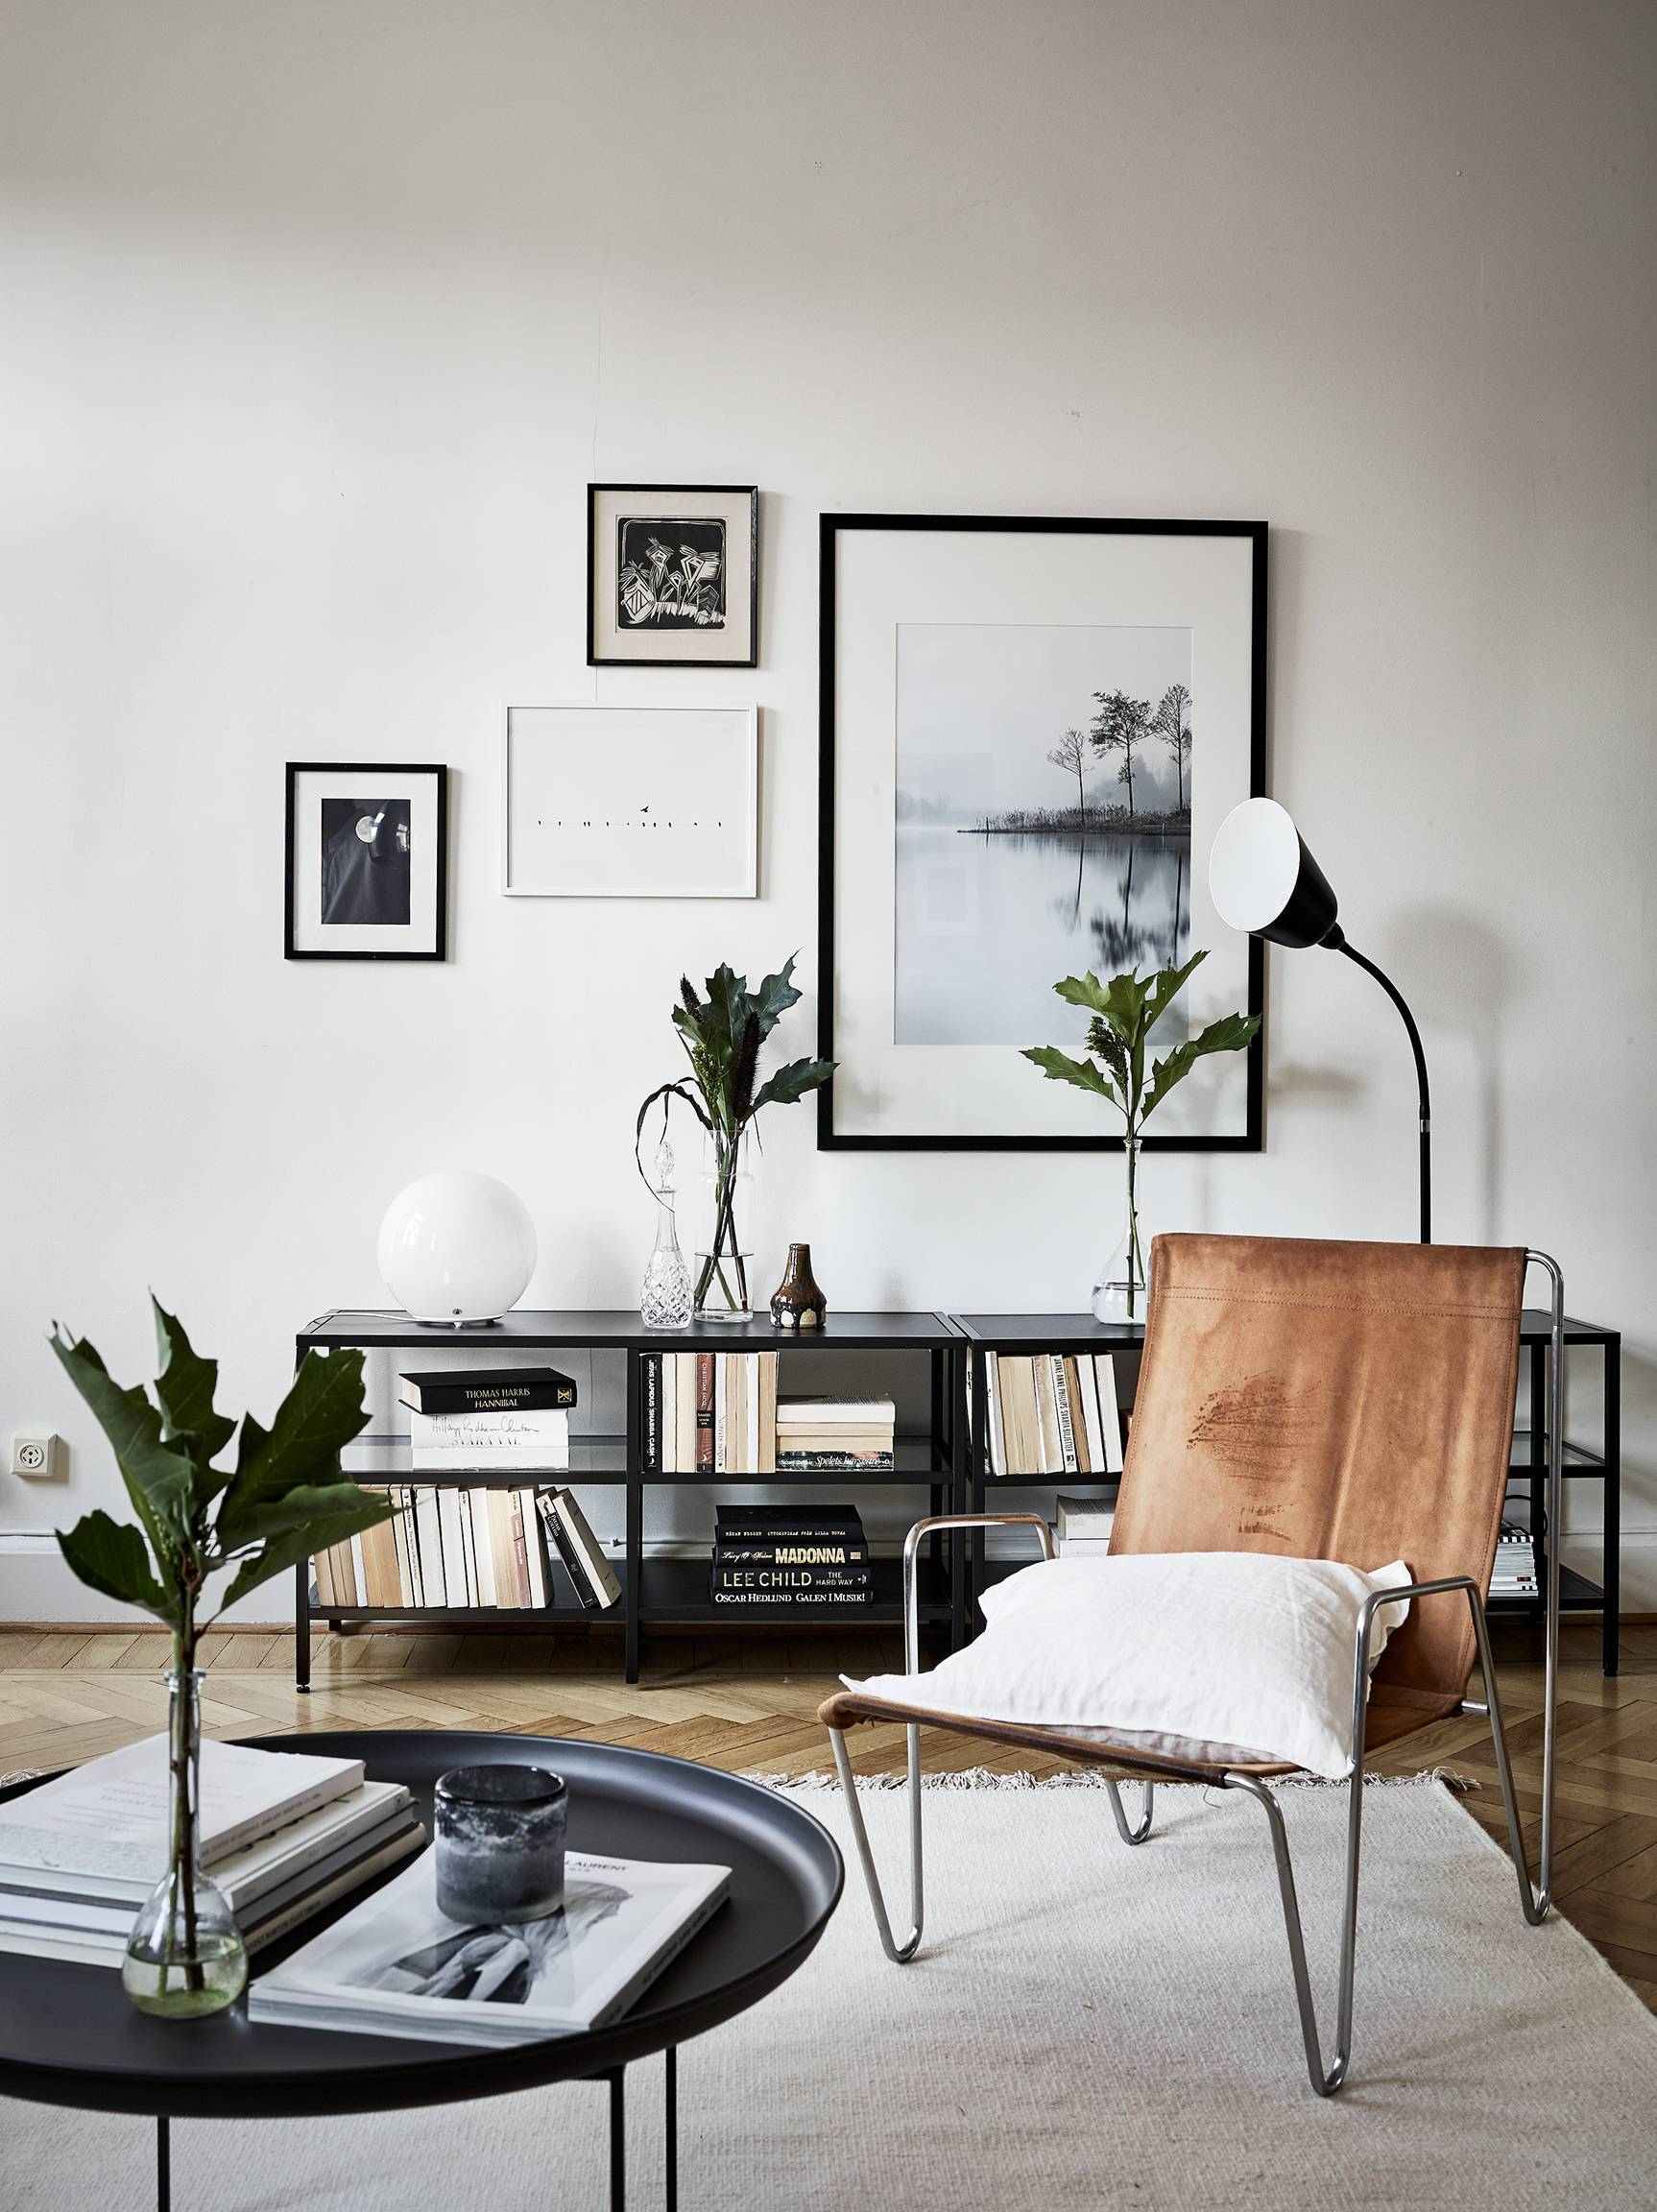 Room with table, chair, low book shelf, and wall art